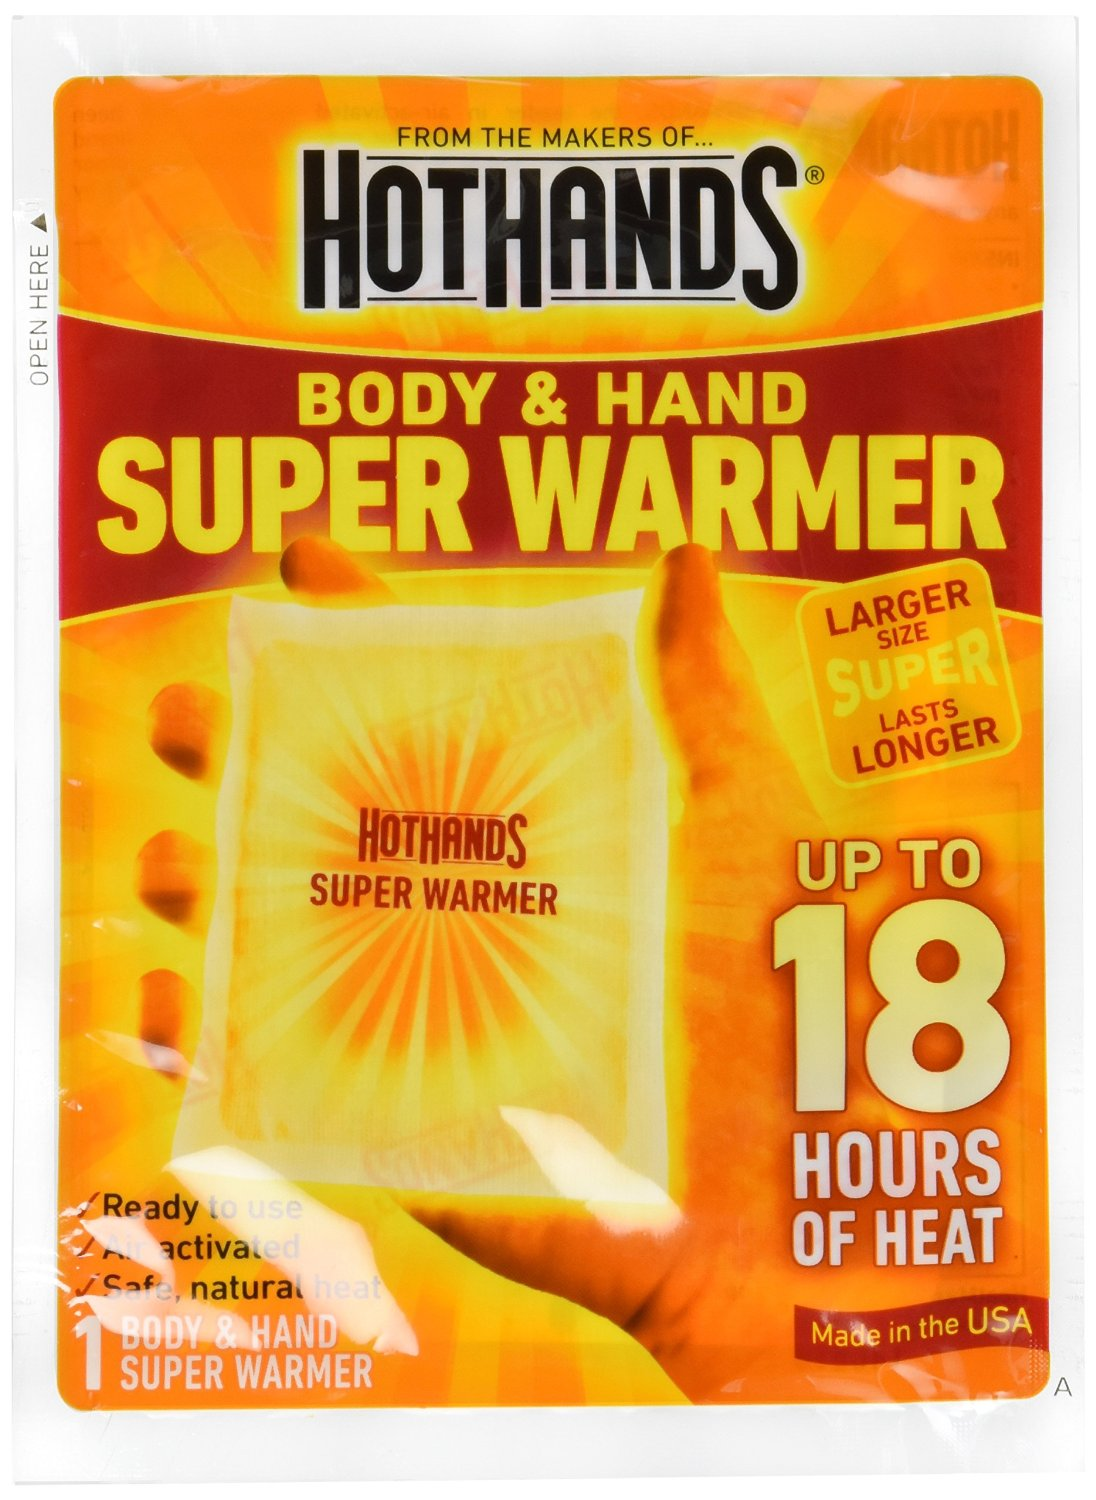 20 Pack HotHands Body & Hand Super Warmer 20 Pack by